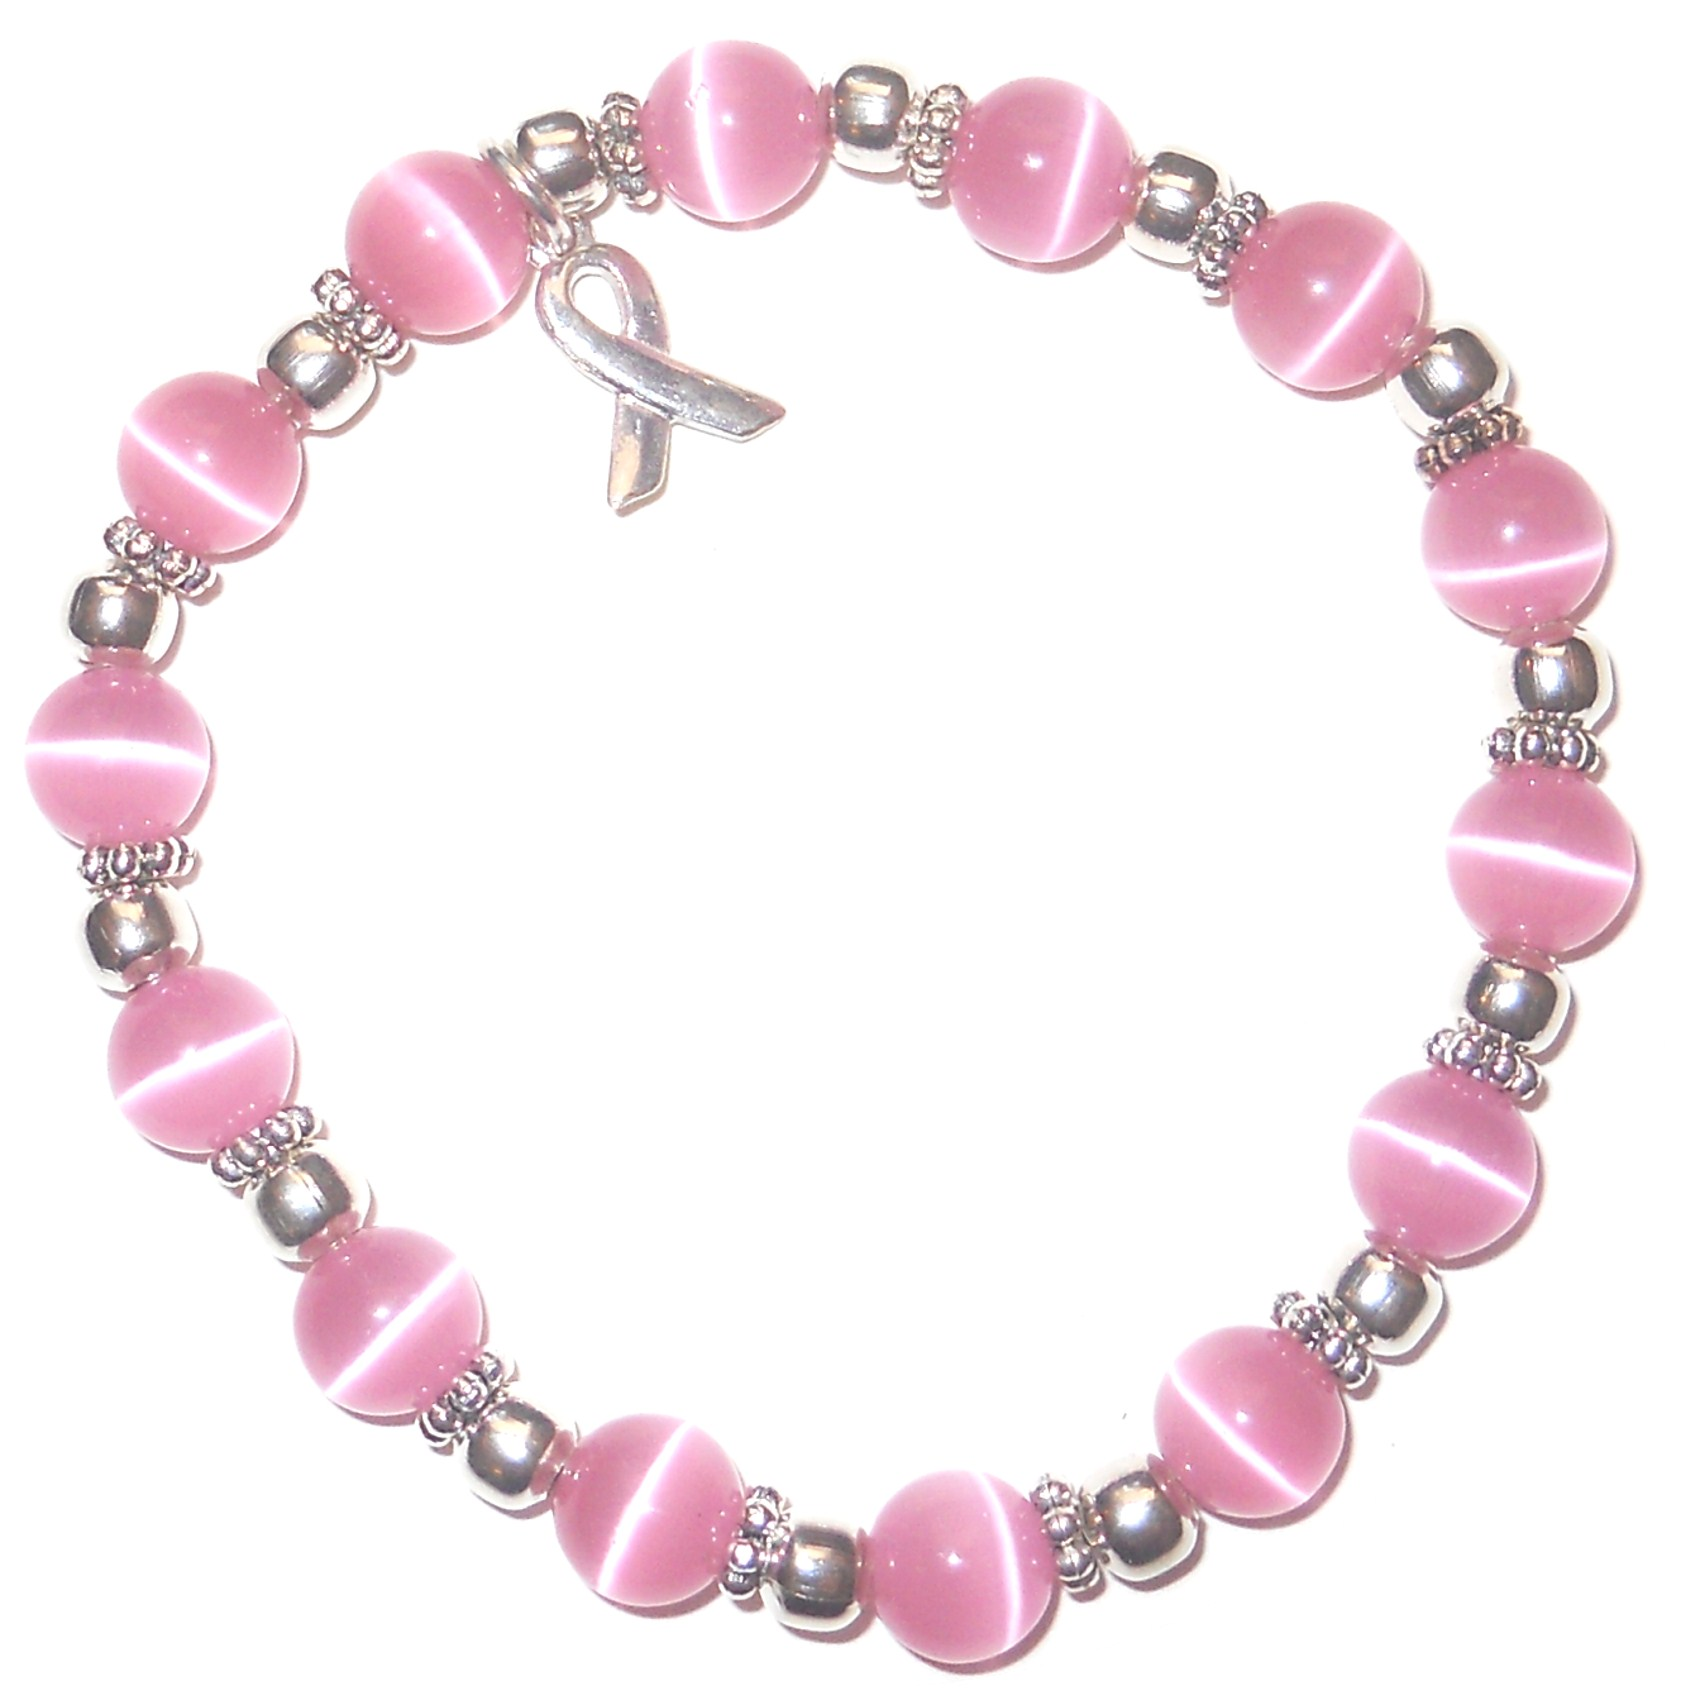 a leukemia bracelets product archives bracelet packaged clasp wire category hidden hollow and stretchy cancer breast with beads awareness stretch items